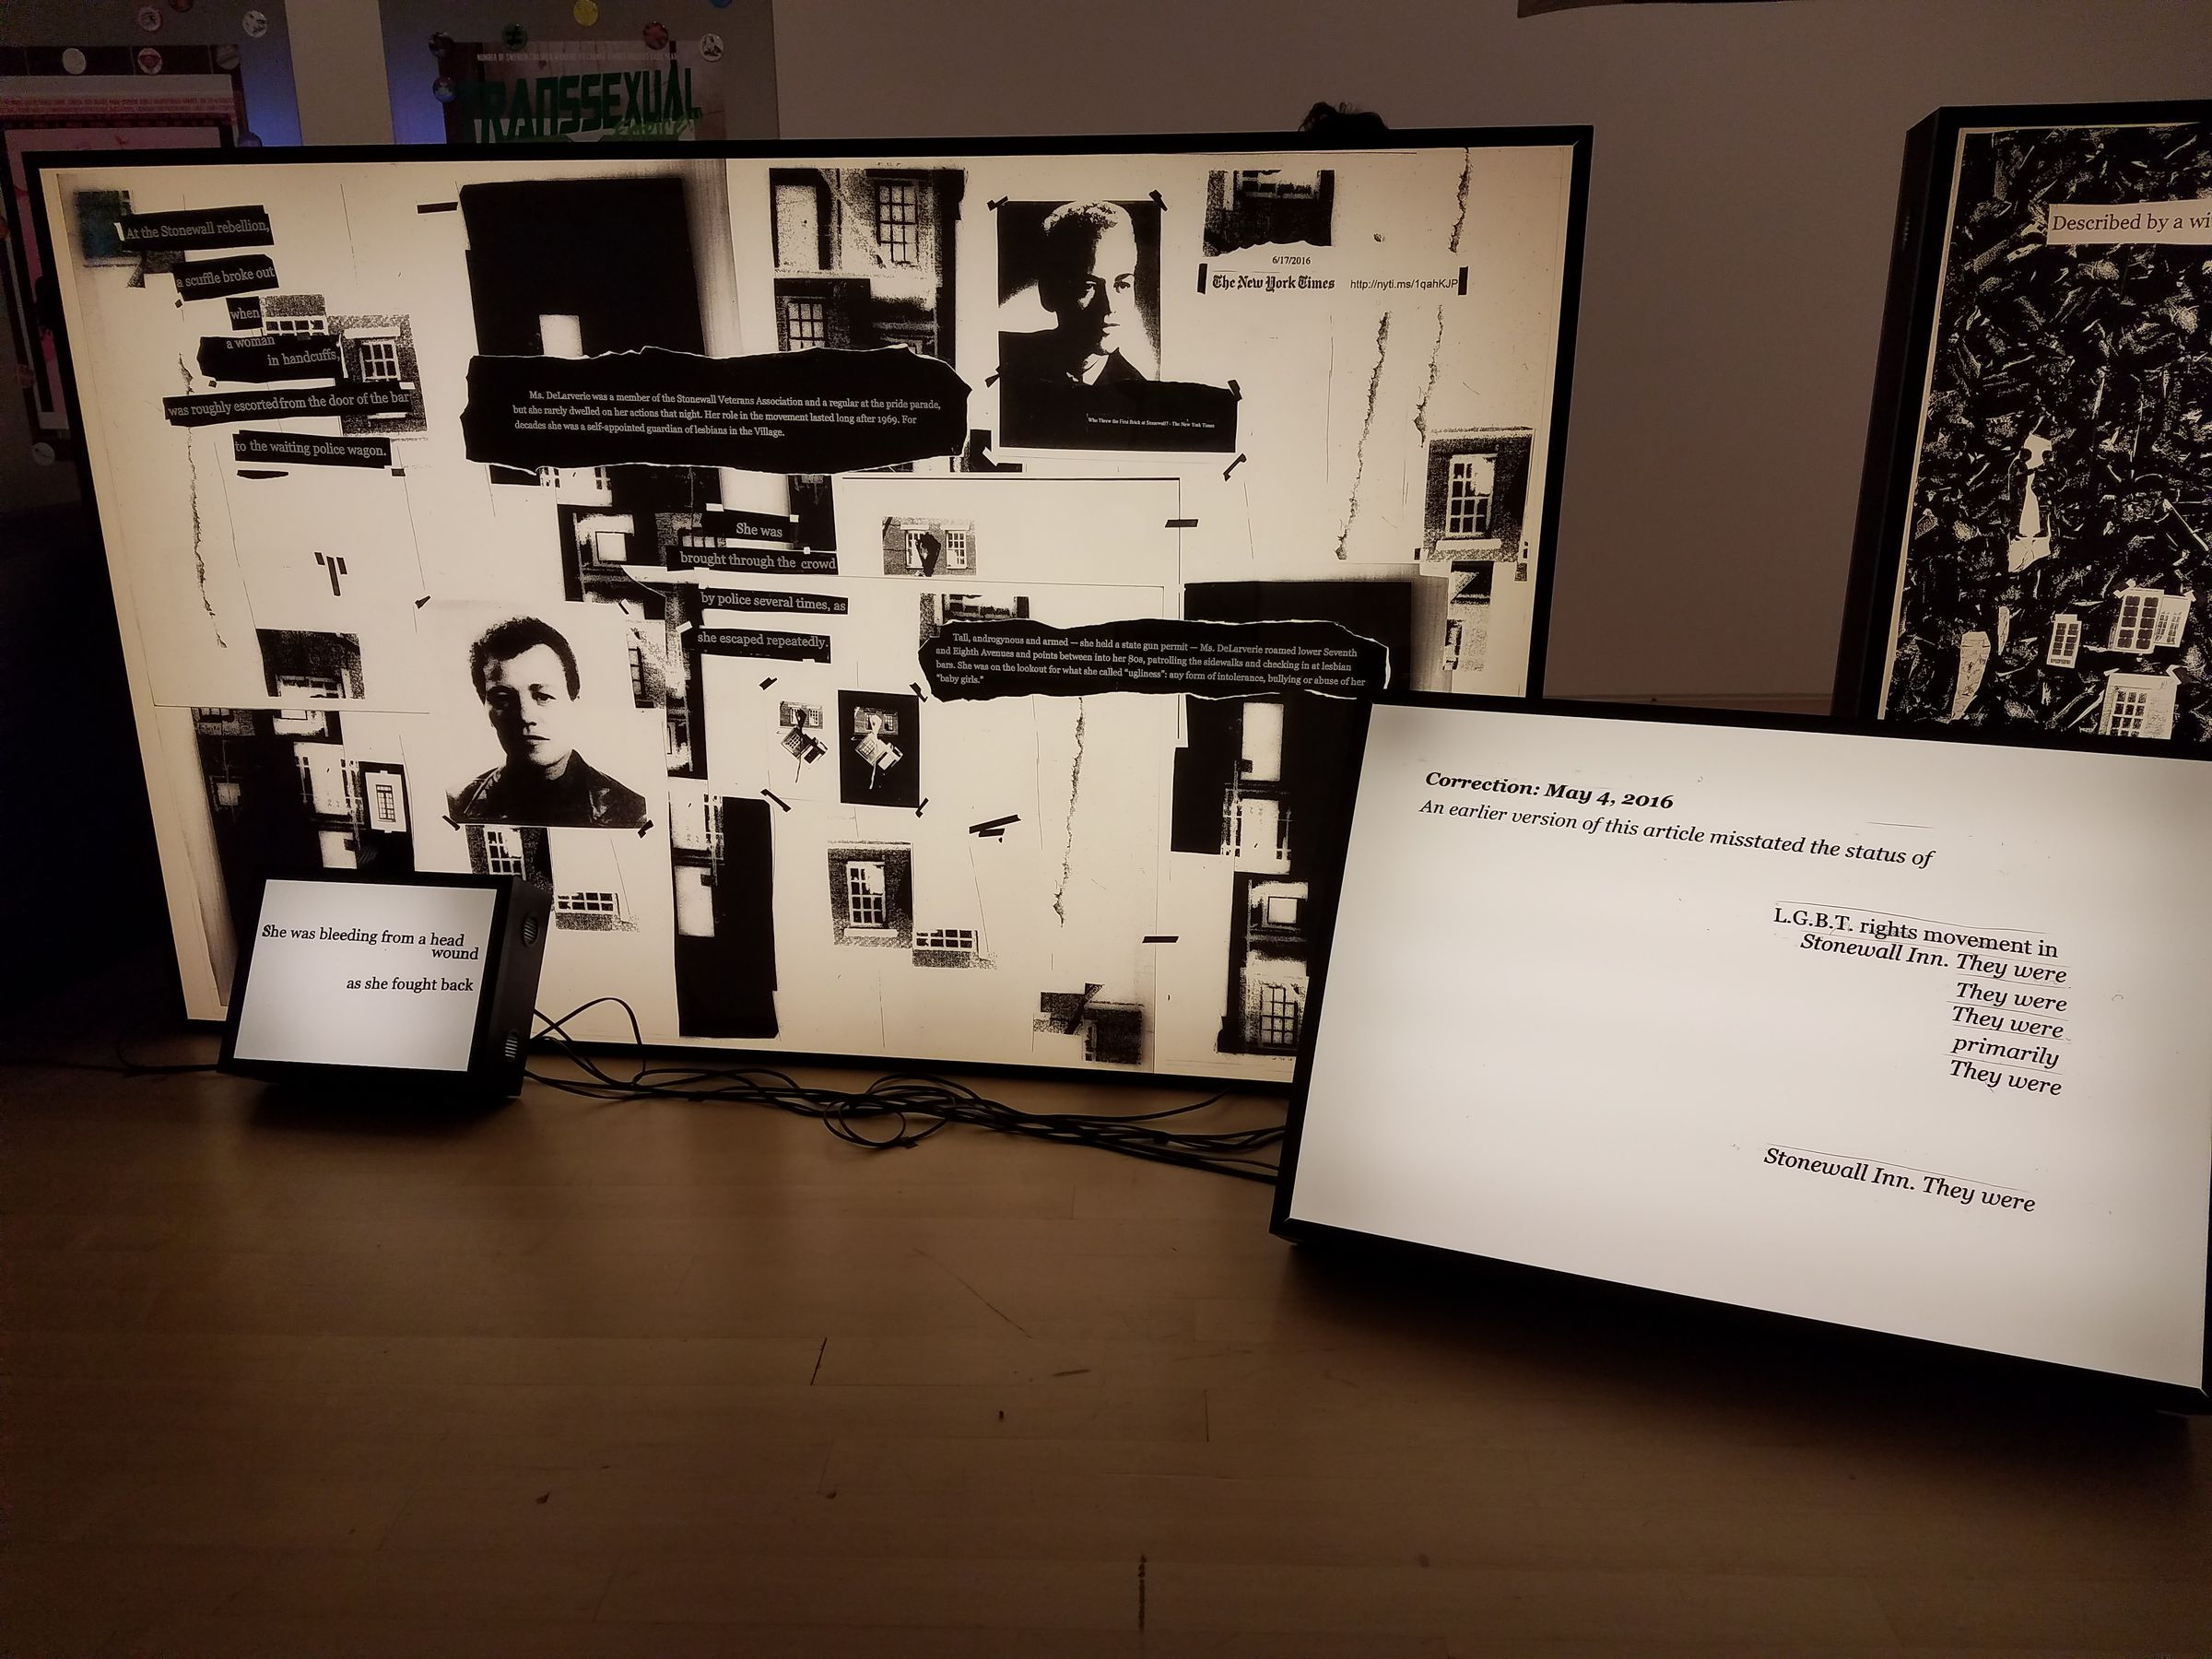 "An indoor art installation consisting of multiple backlit panels showcasing arrangements of black-and-white newspaper clippings. Three panels are completely visible in the picture. The smallest is white with black typewriter text: ""She was bleeding from a head / wound / as she fought back"". Another reads: ""Correction: May 4, 2016 / An earlier version of this article misstated the status of / L.G.B.T. rights movement in / Stonewall Inn. They were / They were / They were / primarily / They were / Stonewall Inn. They were"" The largest panel, which the others lean against, is a collage of headshots, pictures of windows and doors, and newspaper clippings."